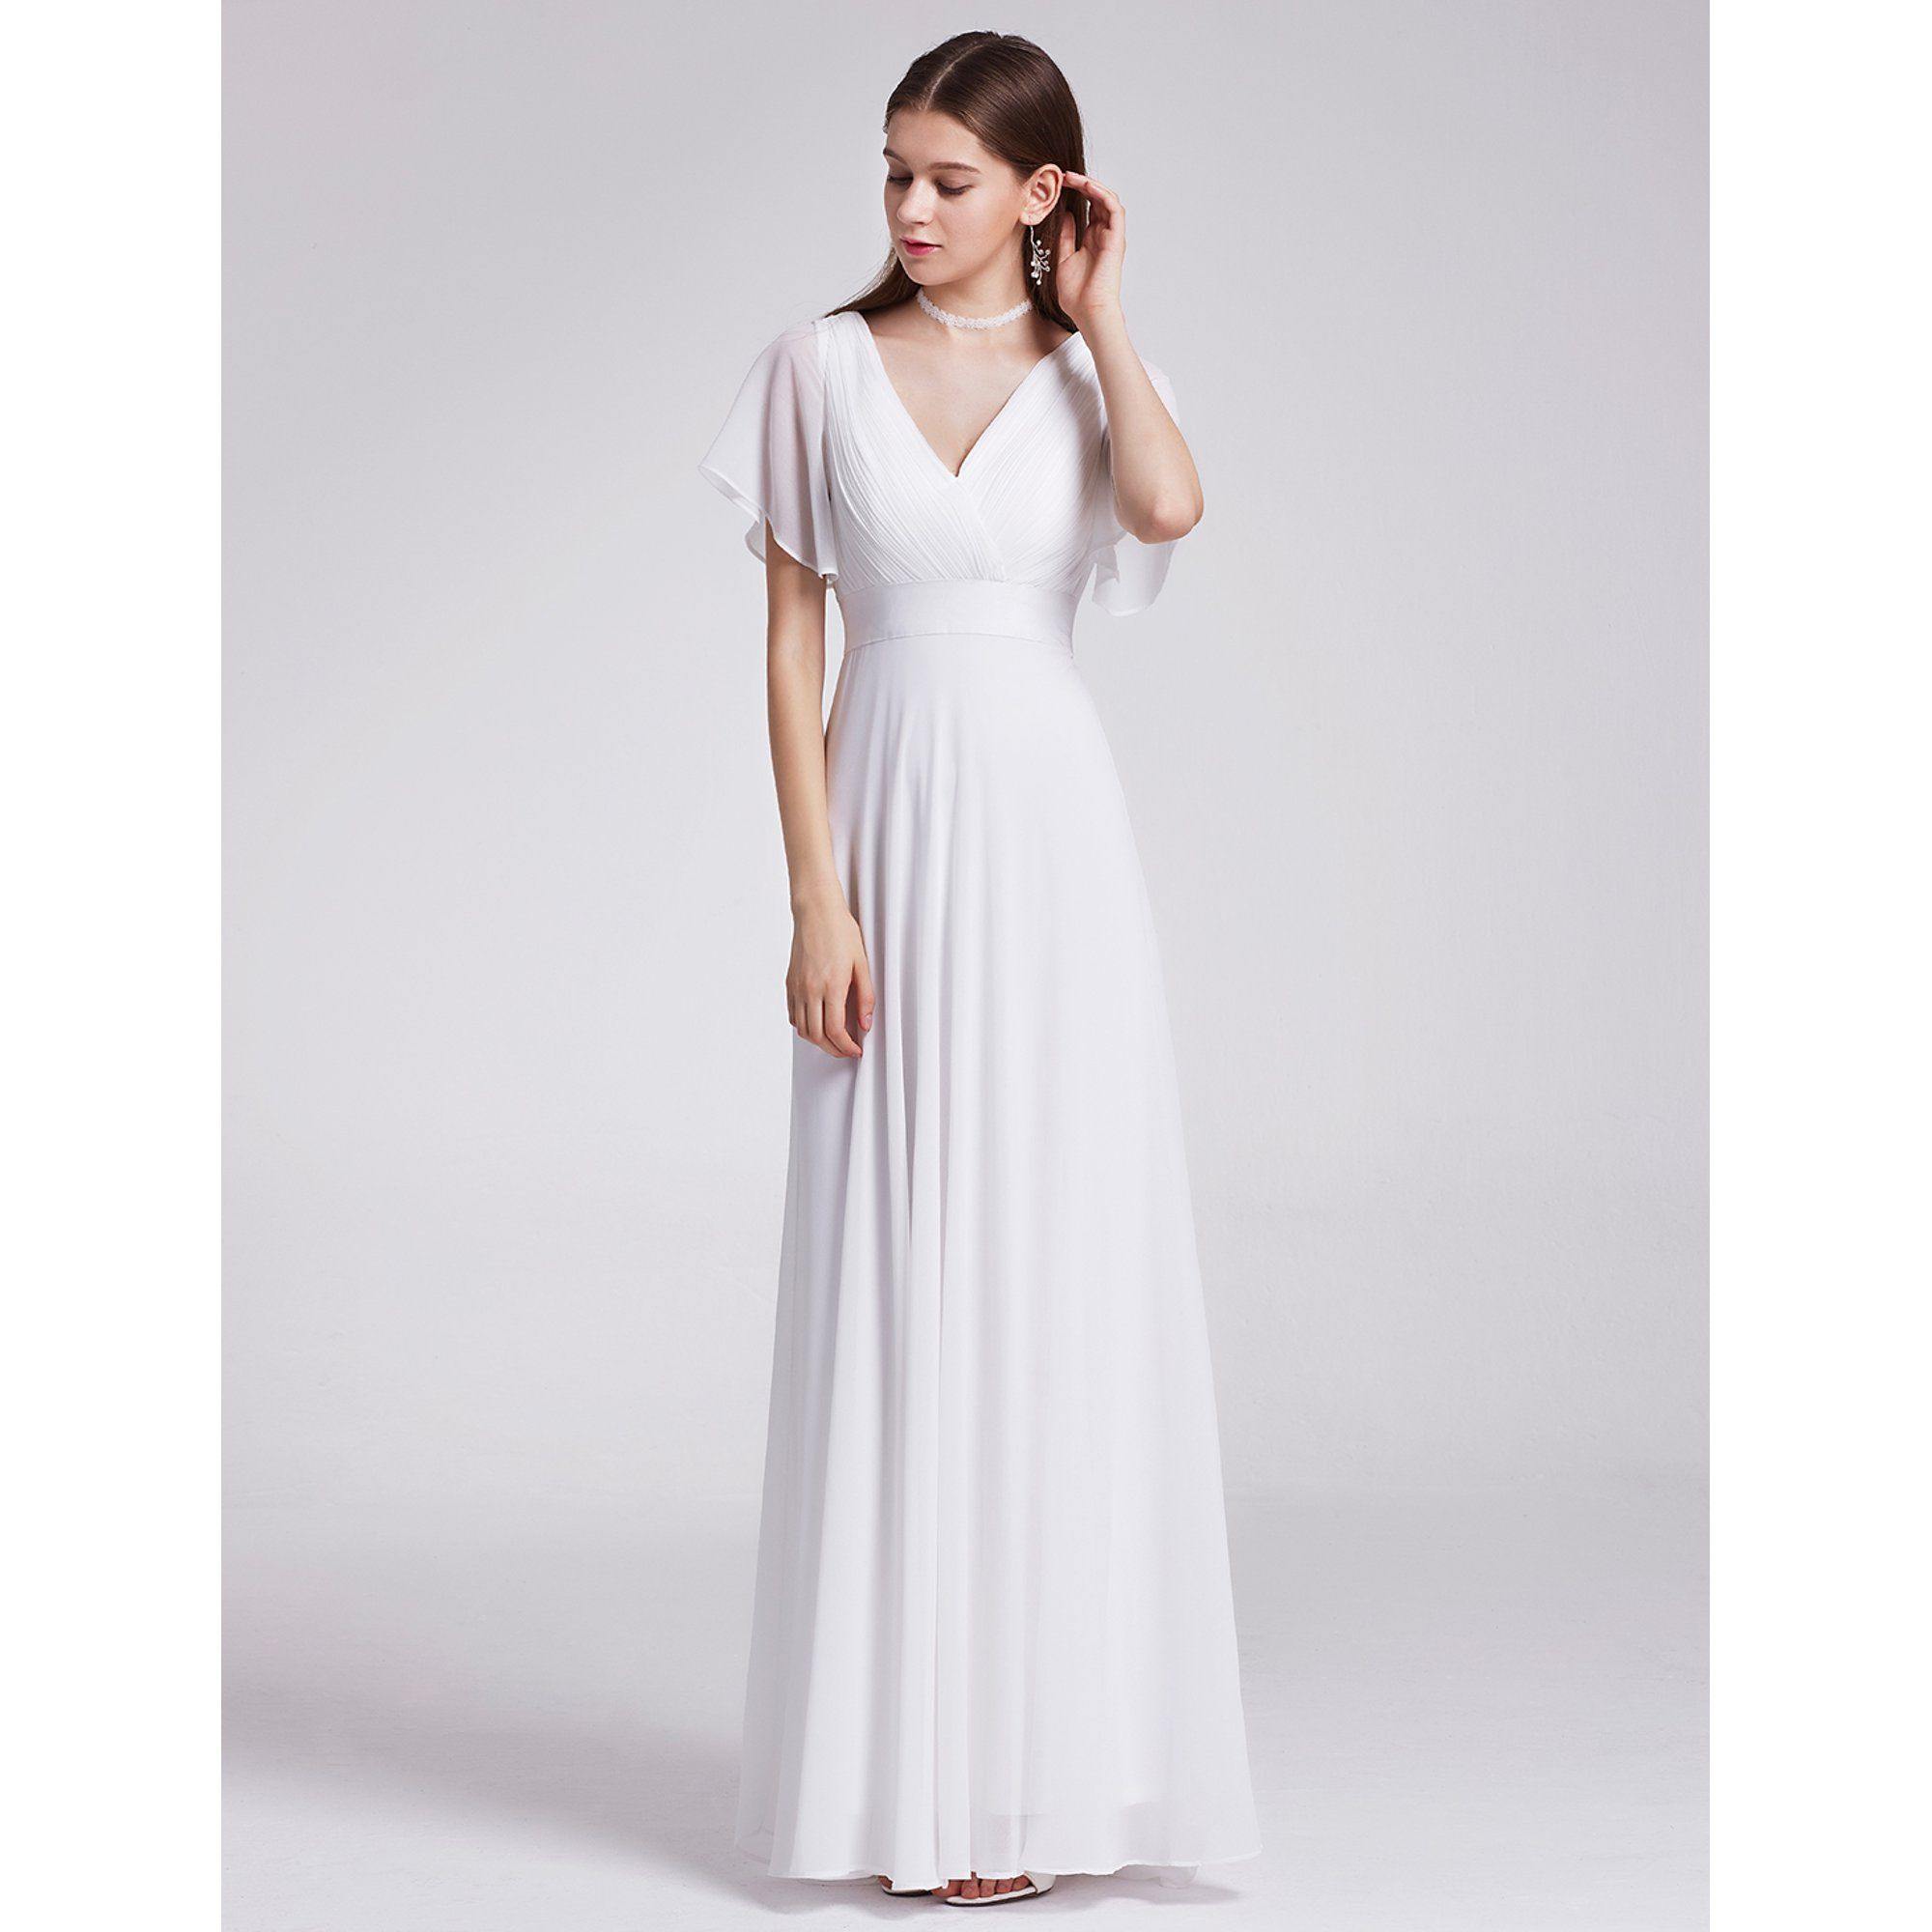 Ever Pretty Ever Pretty Womens Plus Size Formal Evening Dresses For Women 09890 White Us18 Walmart Com In 2021 Empire Waist Evening Dress Beautiful Evening Dresses Evening Gowns Formal [ 2000 x 2000 Pixel ]